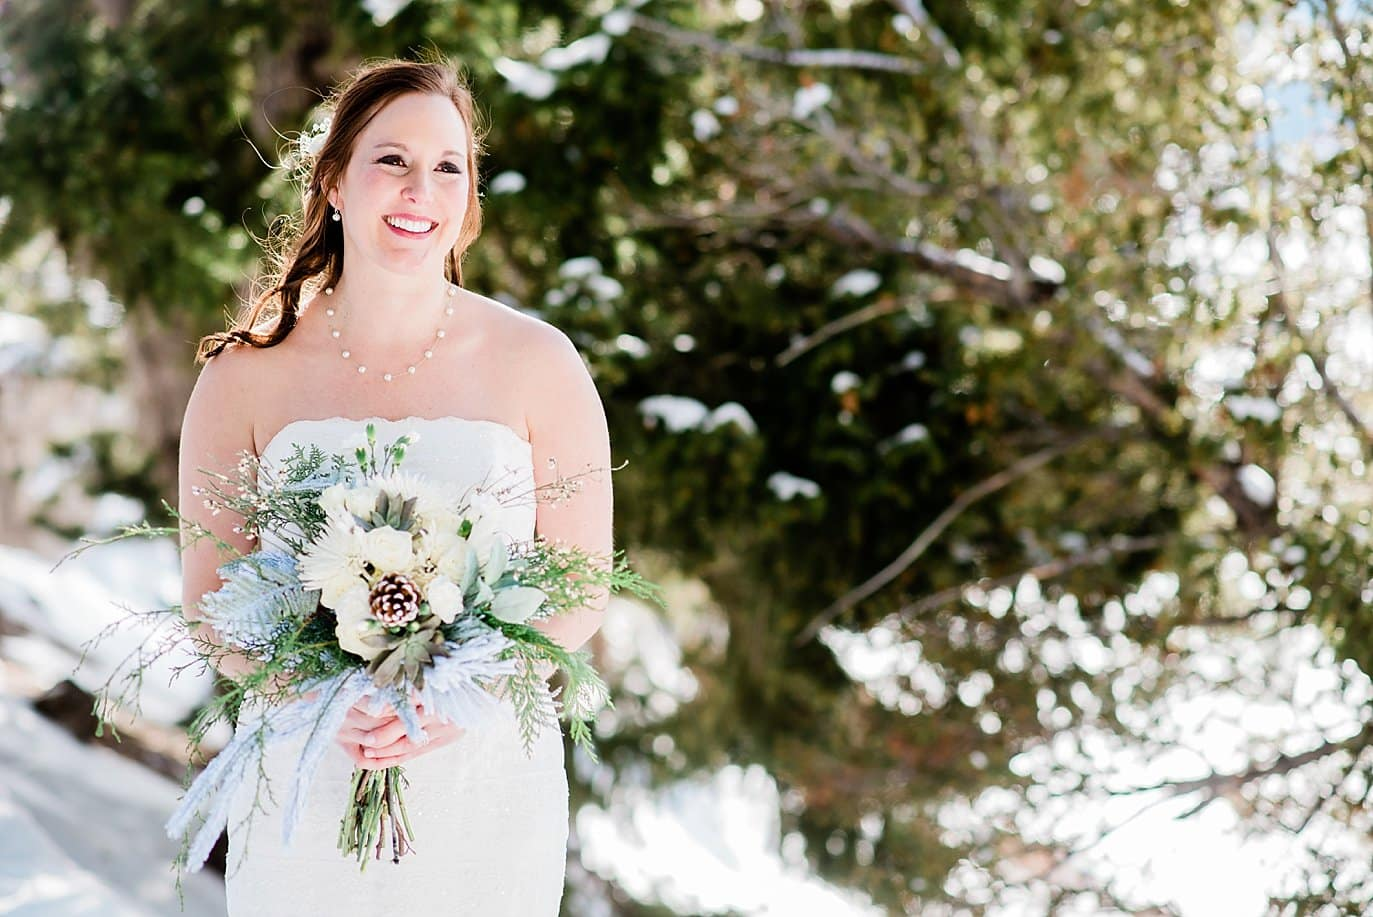 bride in strapless dress with neutral winter flowers at Sapphire Point Elopement by Dillon wedding photographer Jennie Crate Photographer